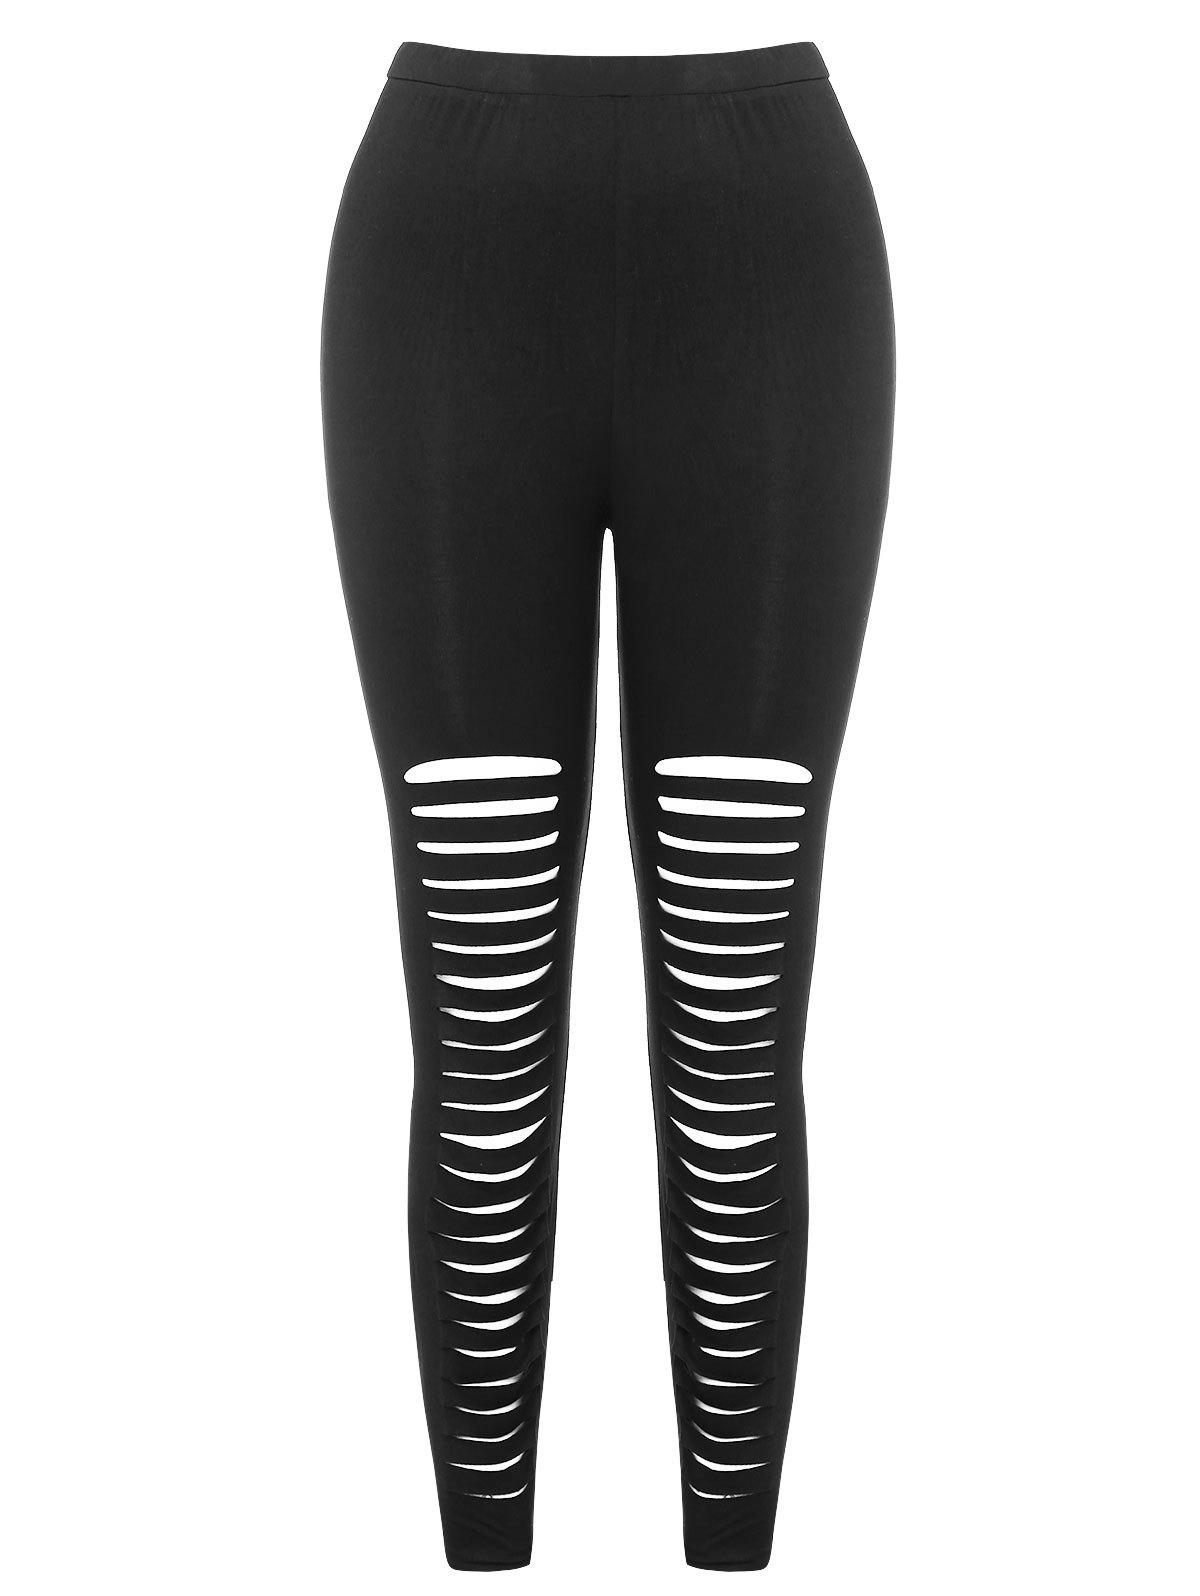 Fancy High Waist Ladder Cut Out Plus Size Pants